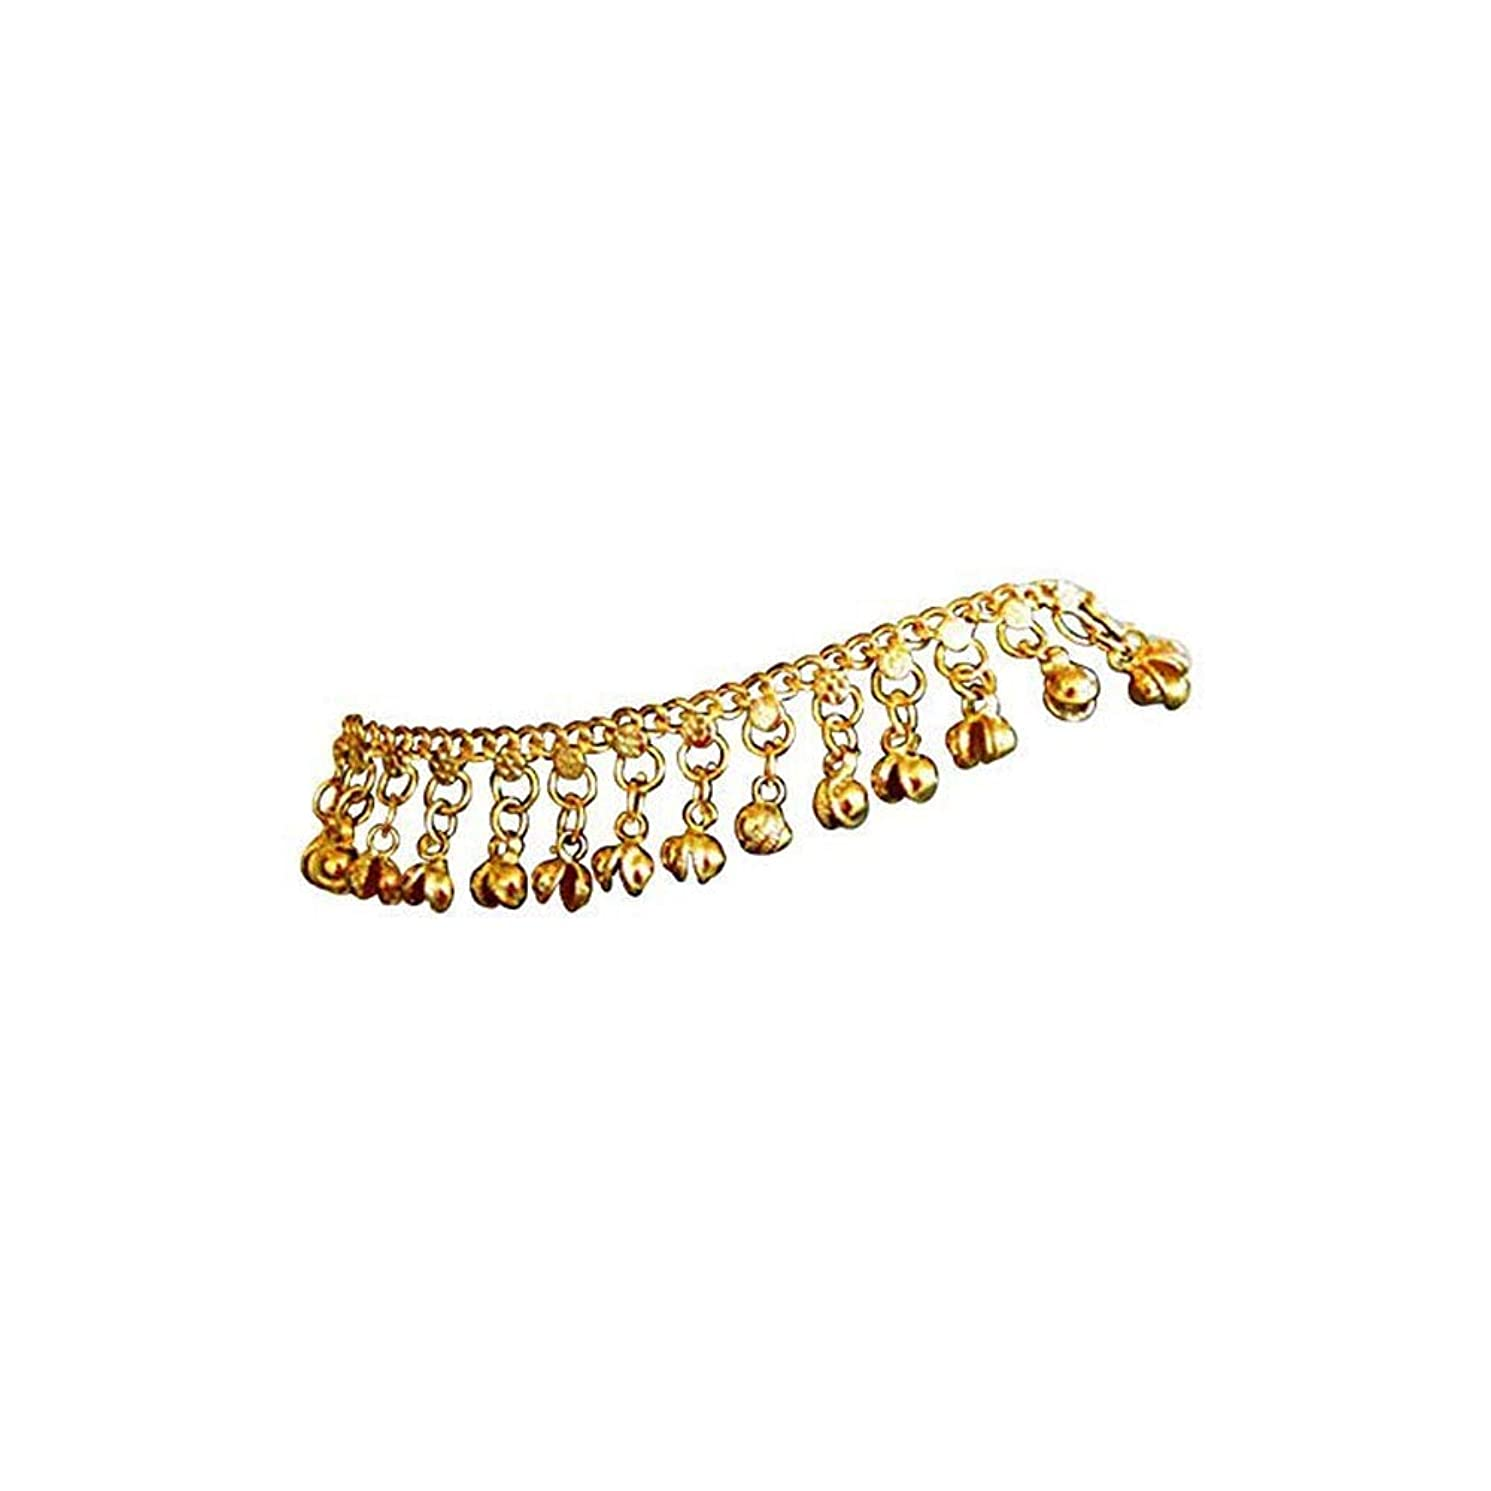 Uma Indian Traditional Belly Dance Ghungroo Brass Anklet with Jingling Bells Gold-Toned